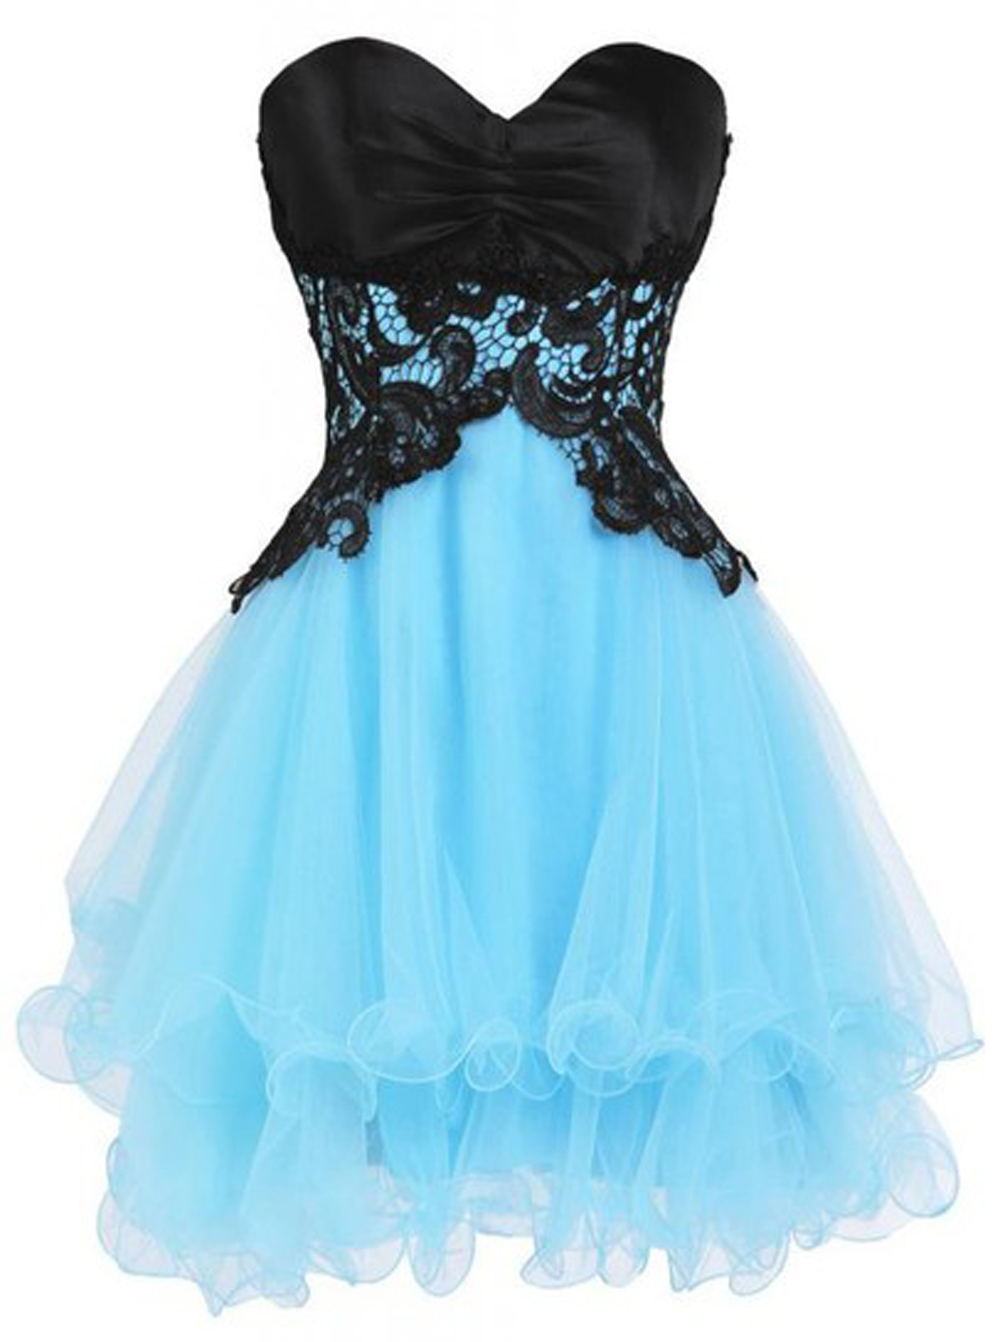 A-line Sweetheart Tulle Lace-up Short Blue Homecoming Dress with Black Appliques thumbnail